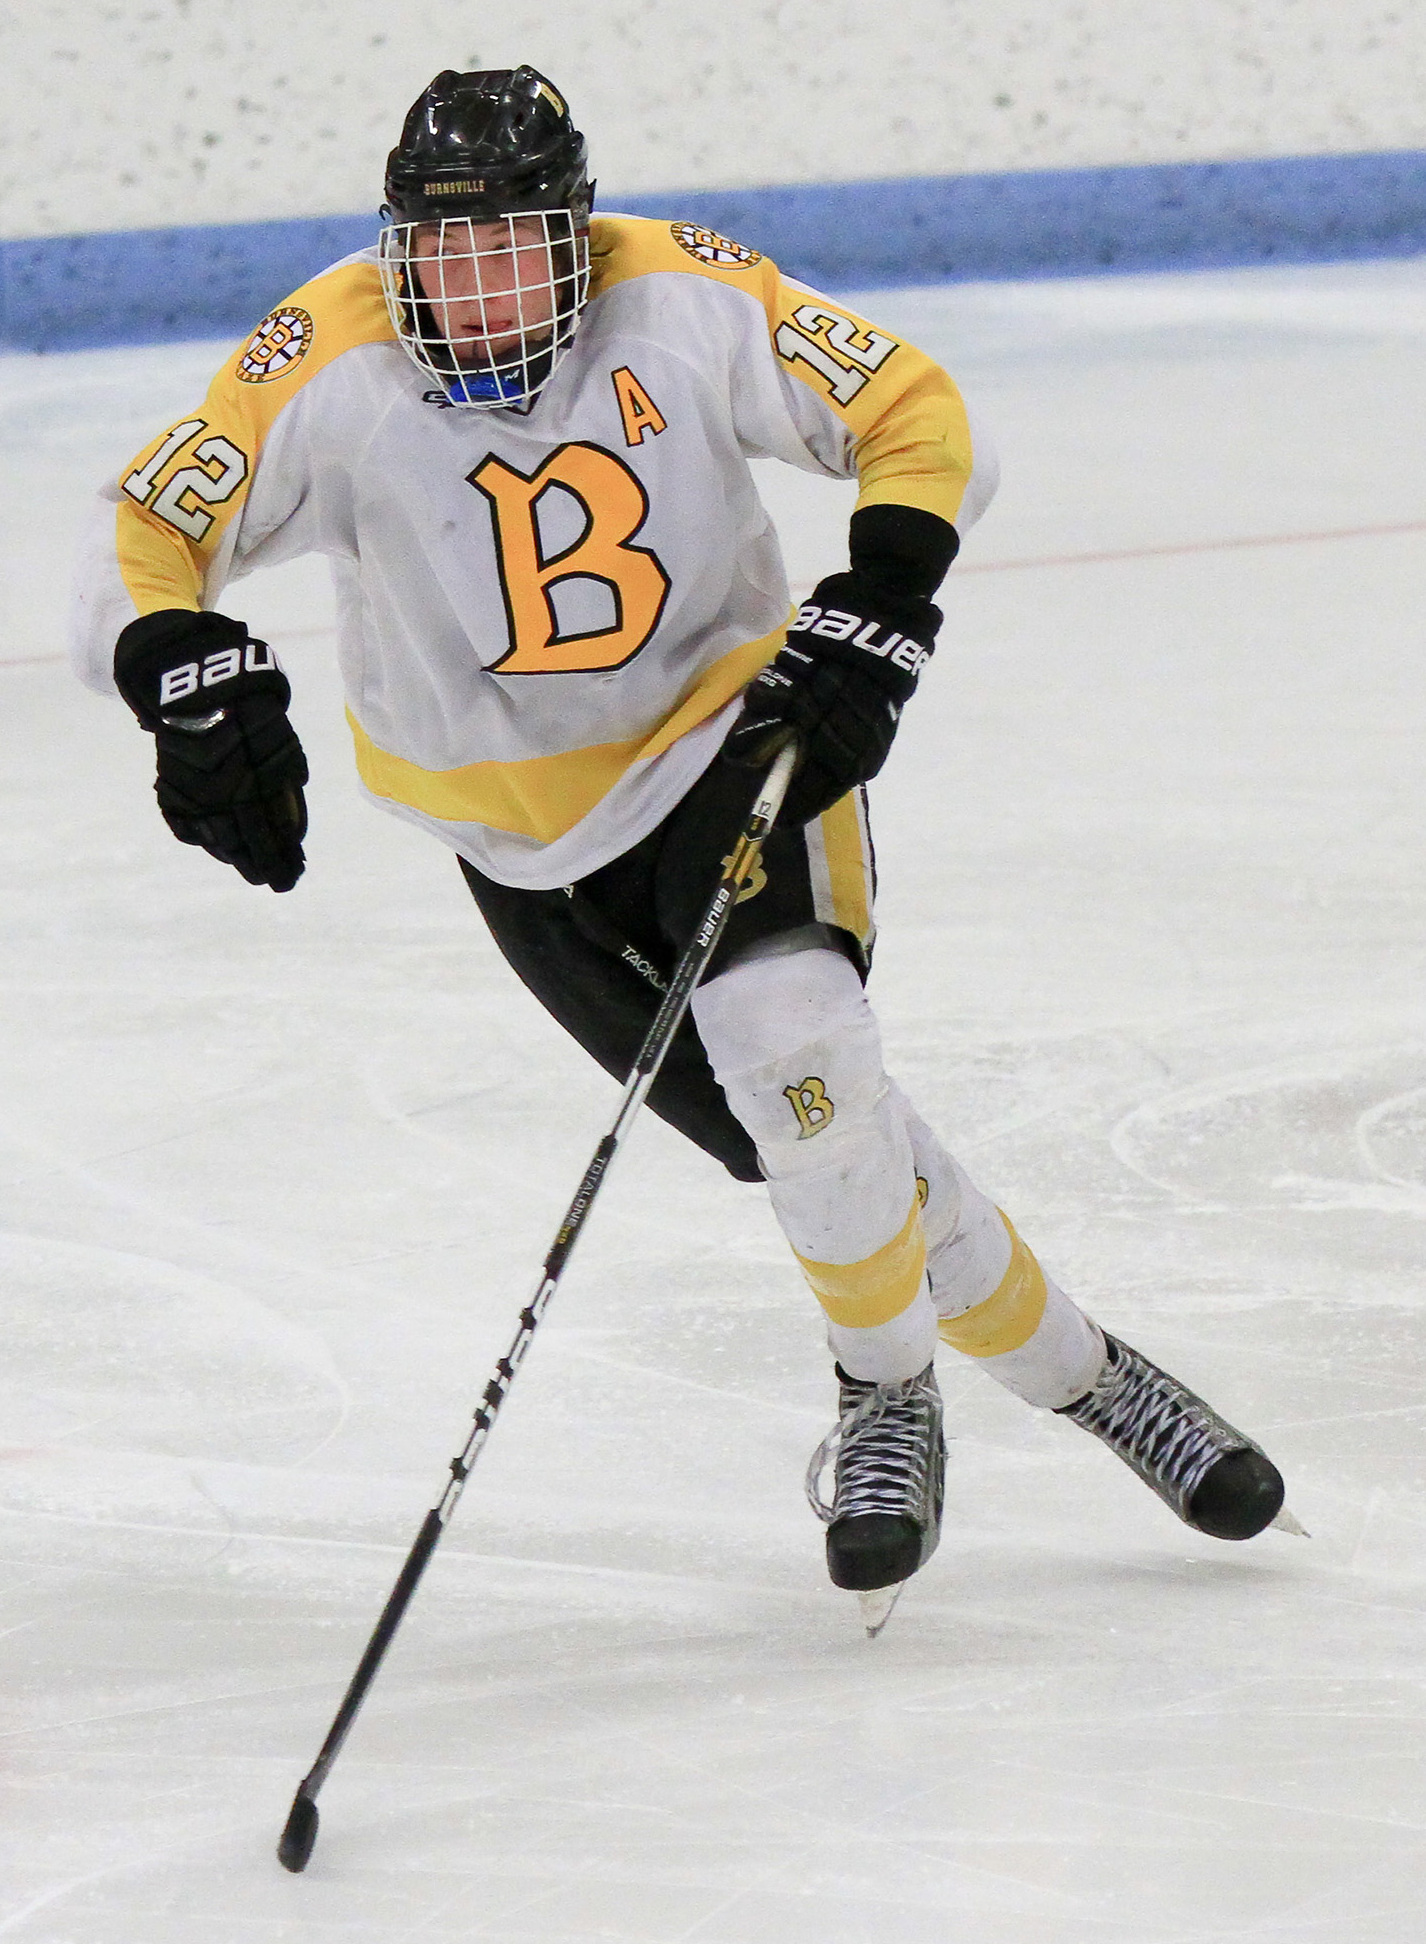 MN H.S.: Burnsville Hopes Big Win Leads Over Hump